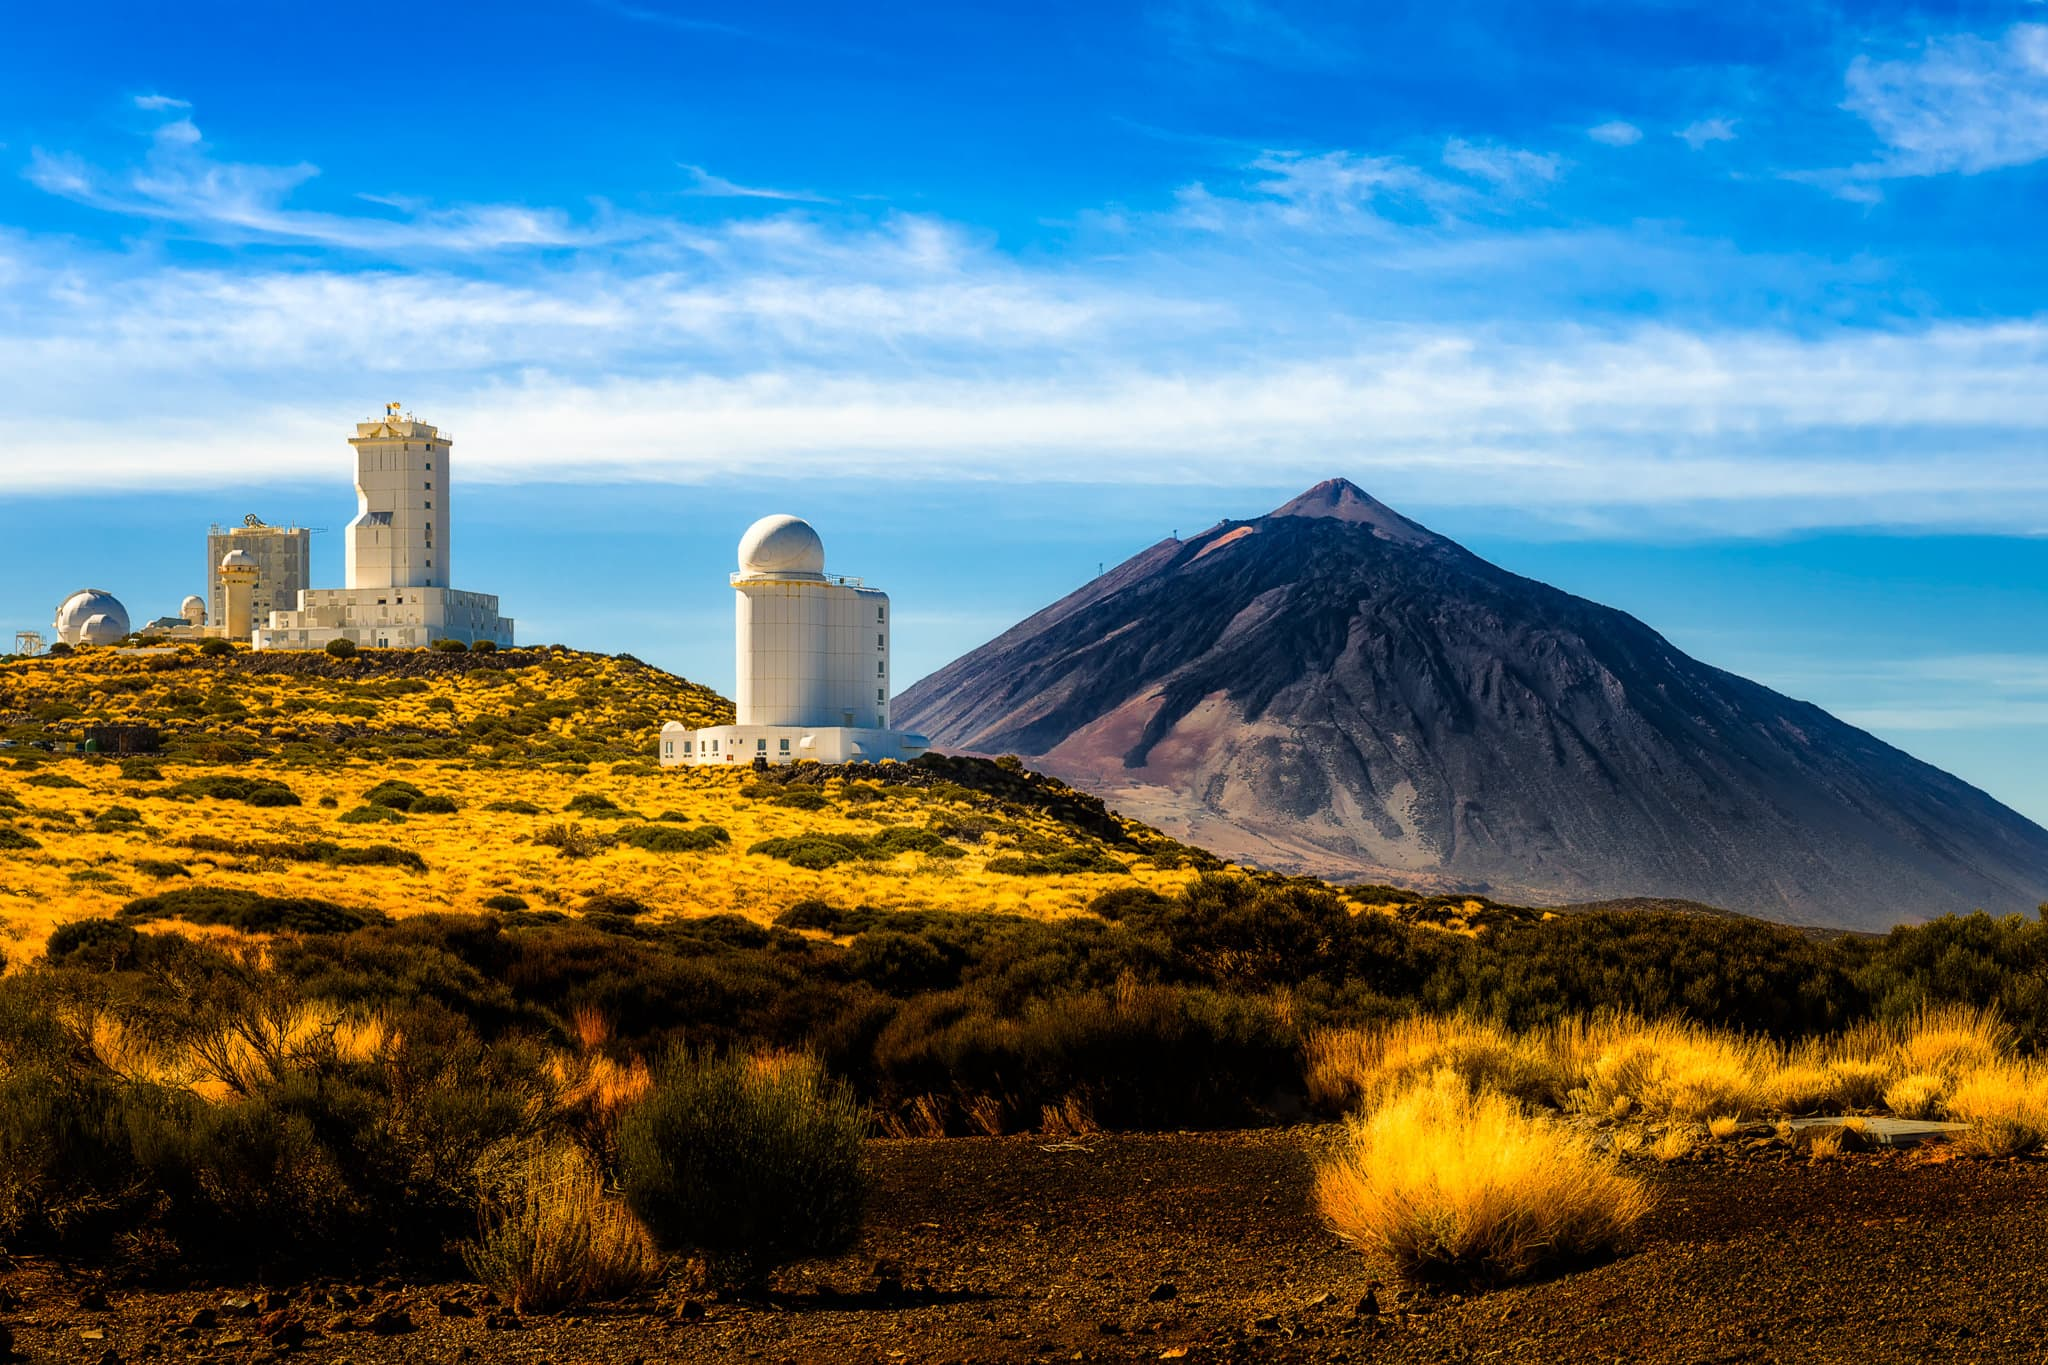 Tenerife Teide Observatory on a sunny day, Spain.